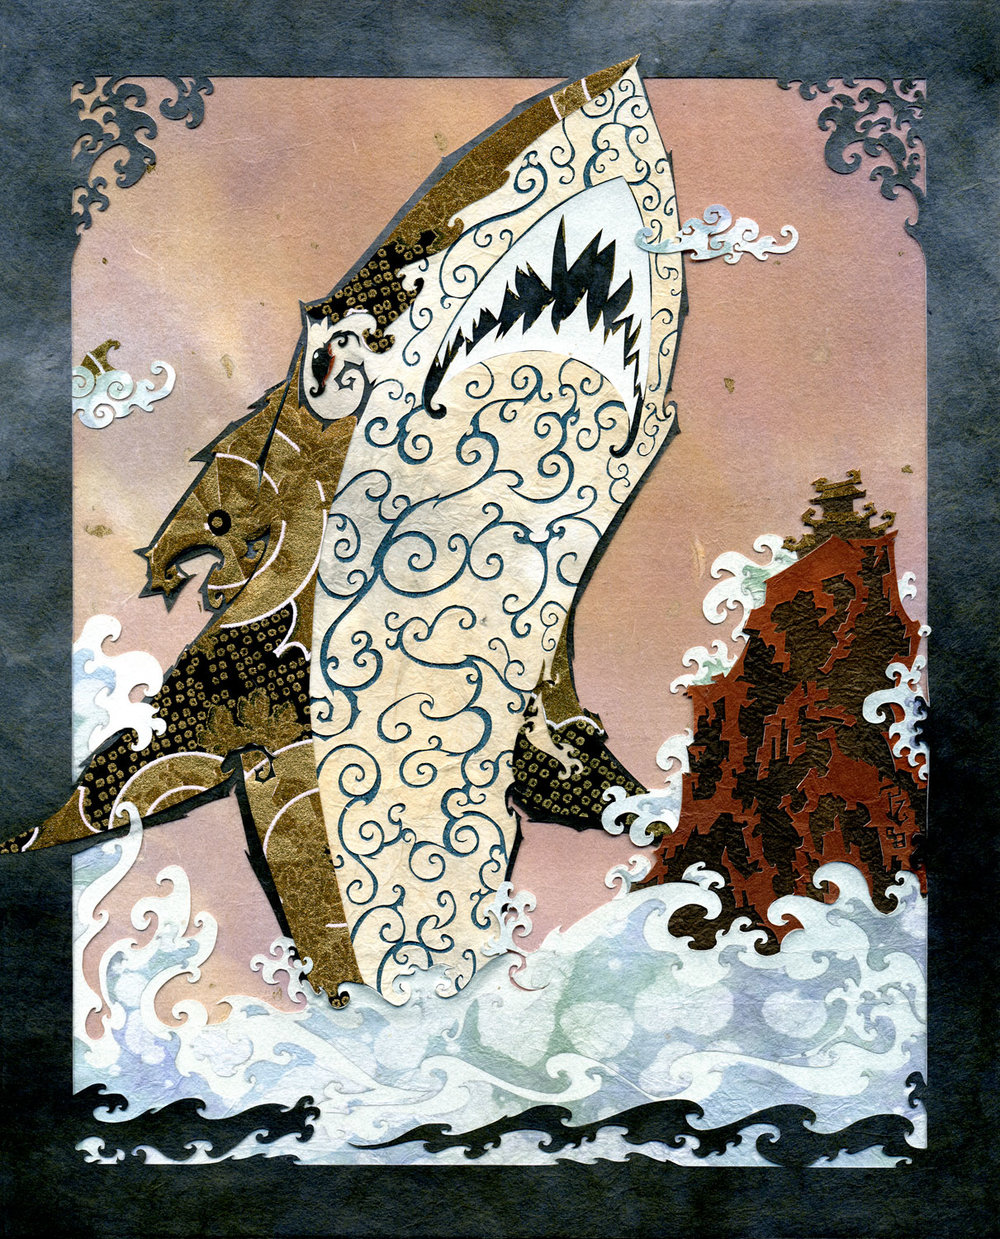 ⊛  The Golden Sea, It Has Teeth   ⊛  10 x 8 in • 254 x 203 mm   ⊛  cut paper + washi + chiyogami / wood   ⊛  private collection